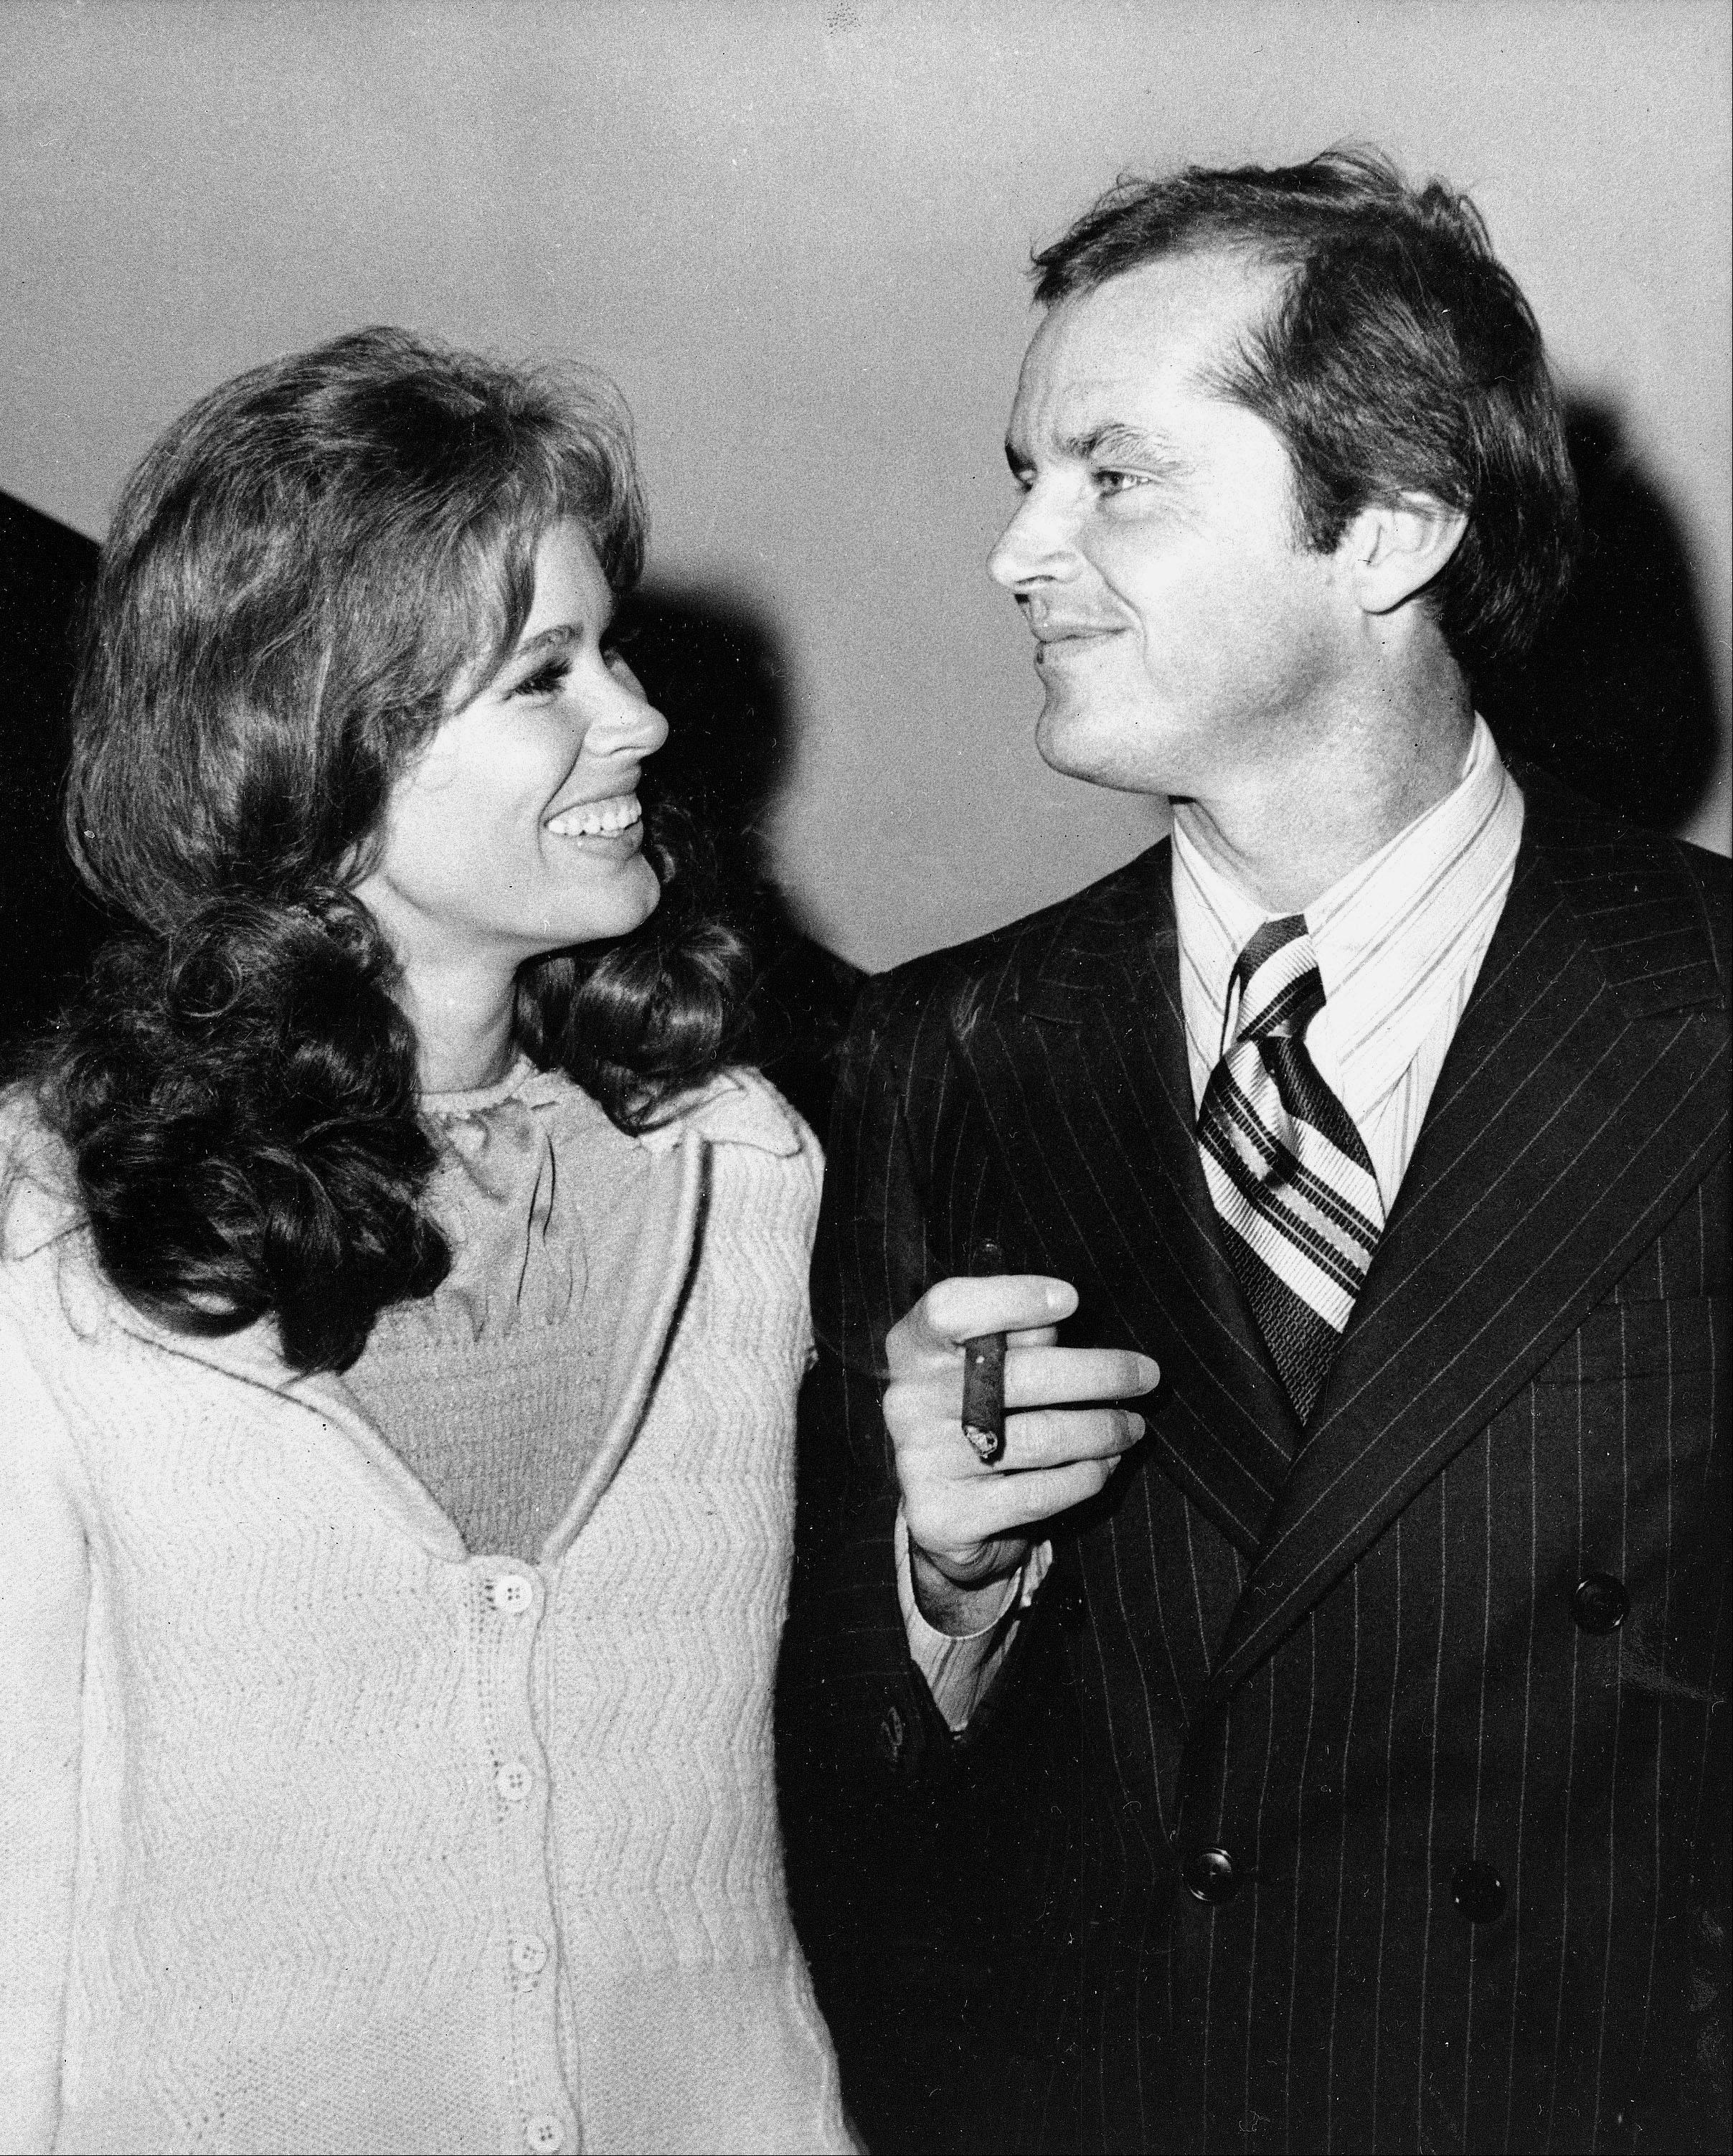 Jack Nicholson, right, and co-star Karen Black appear together at New York�s Philharmonic Hall to attend the premiere of their new film �Five Easy Pieces.�